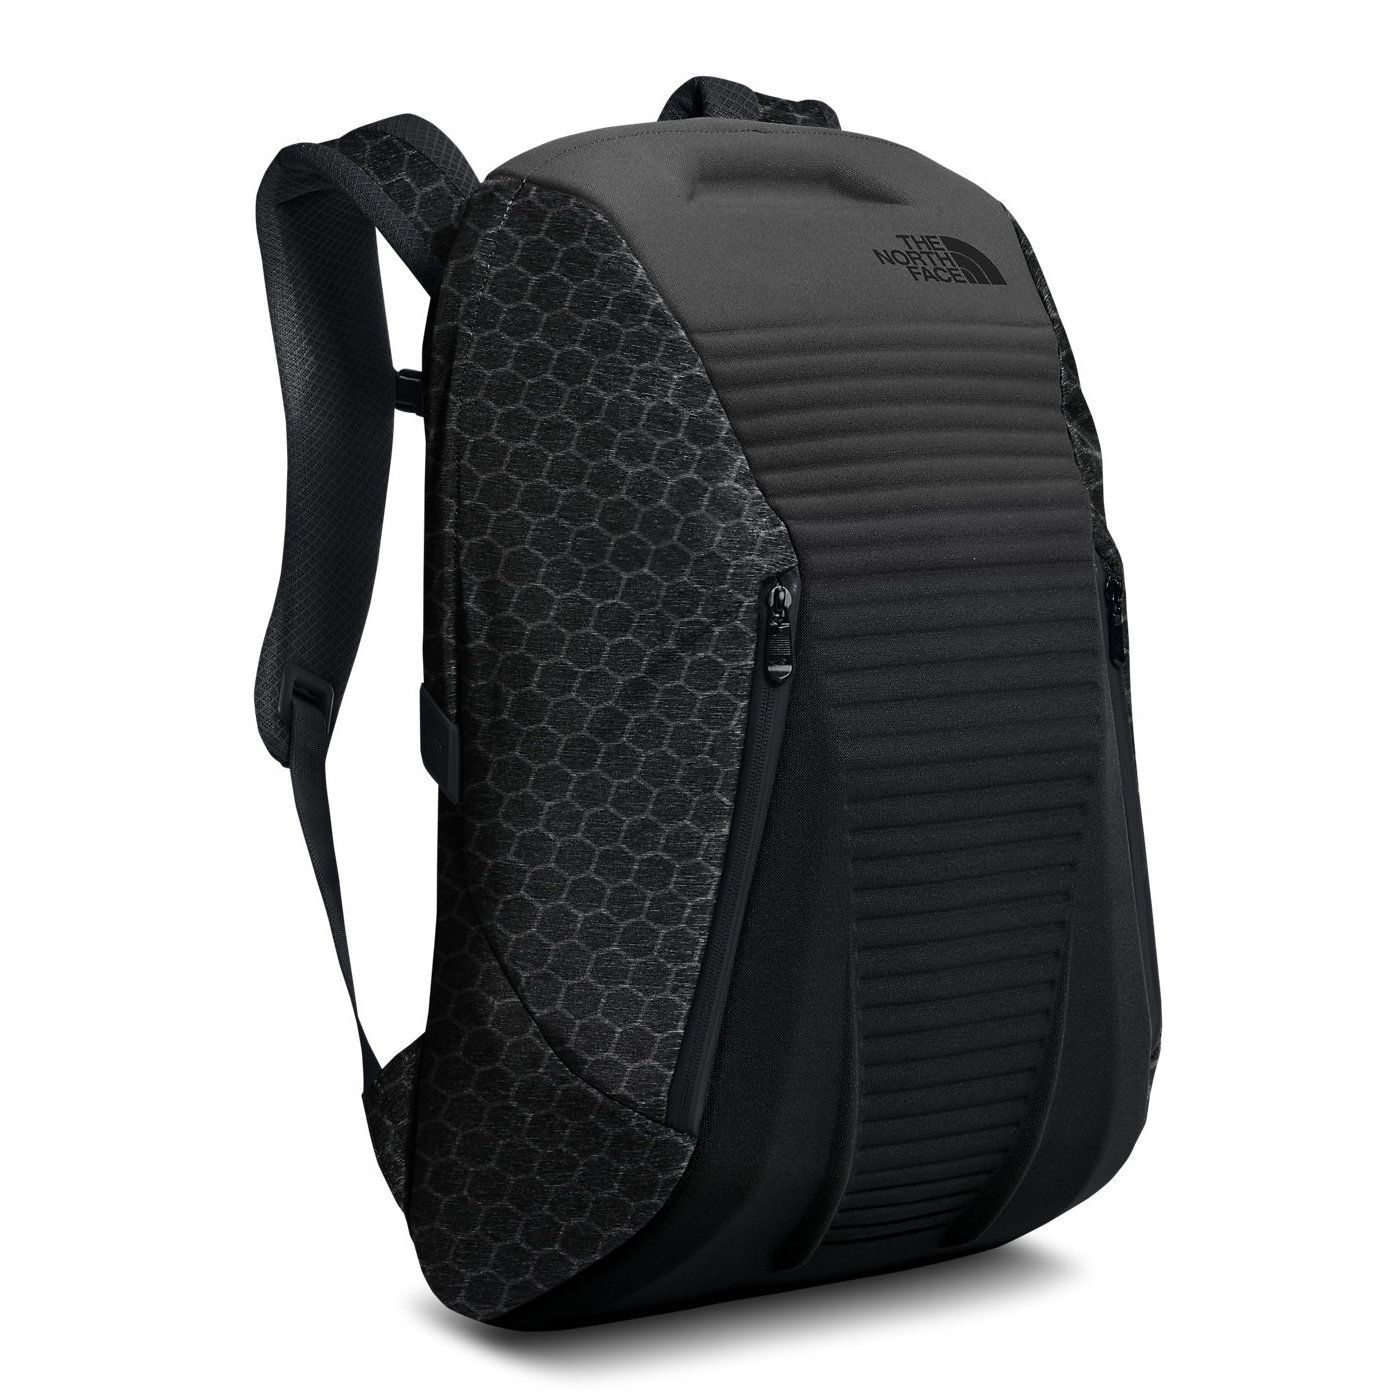 92b353c2a0f0 The 5 coolest backpacks for urban gadget nerds